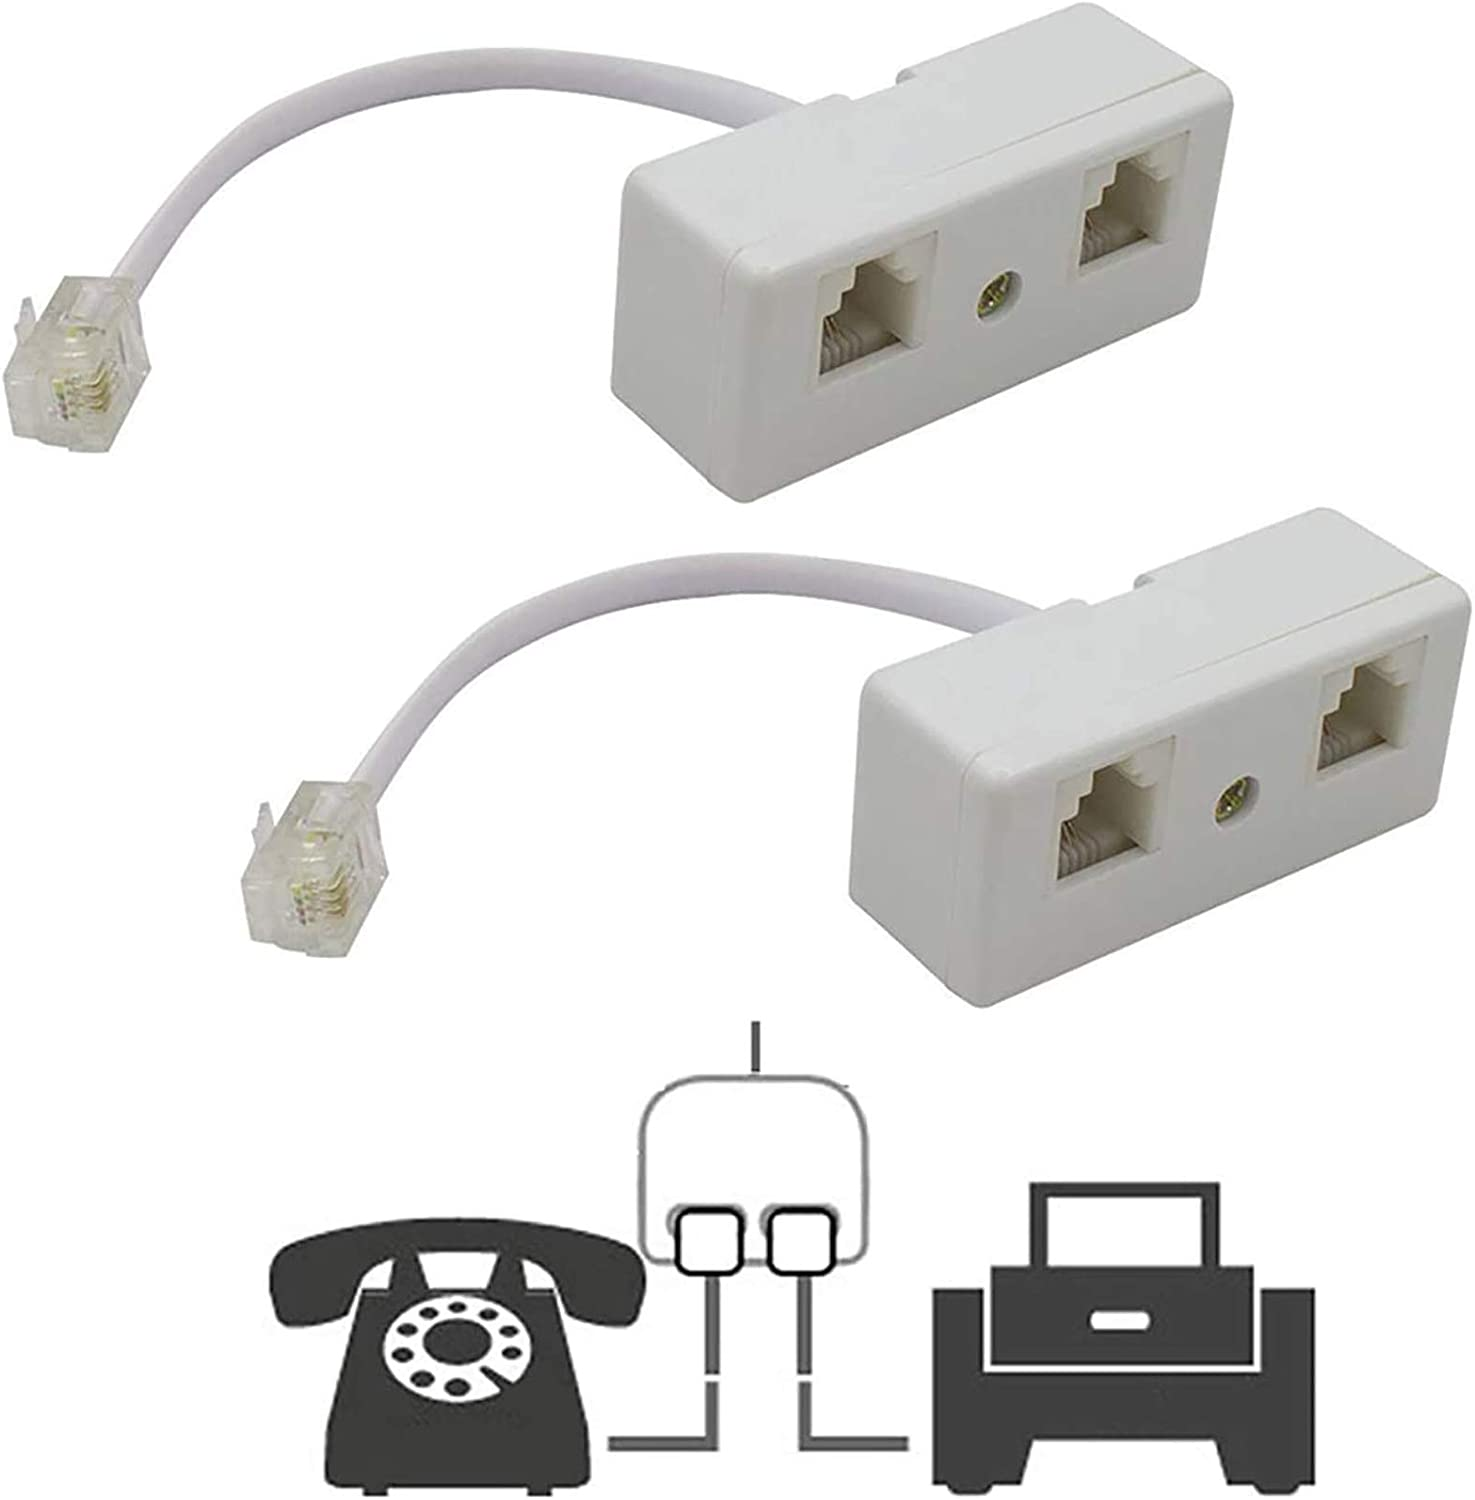 Amazon.com: Two Way Telephone Splitters,Uvital Male to 2 Female Converter  Cable RJ11 6P4C Telephone Wall Adaptor and Separator for Landline(White,2  Pack): ElectronicsAmazon.com